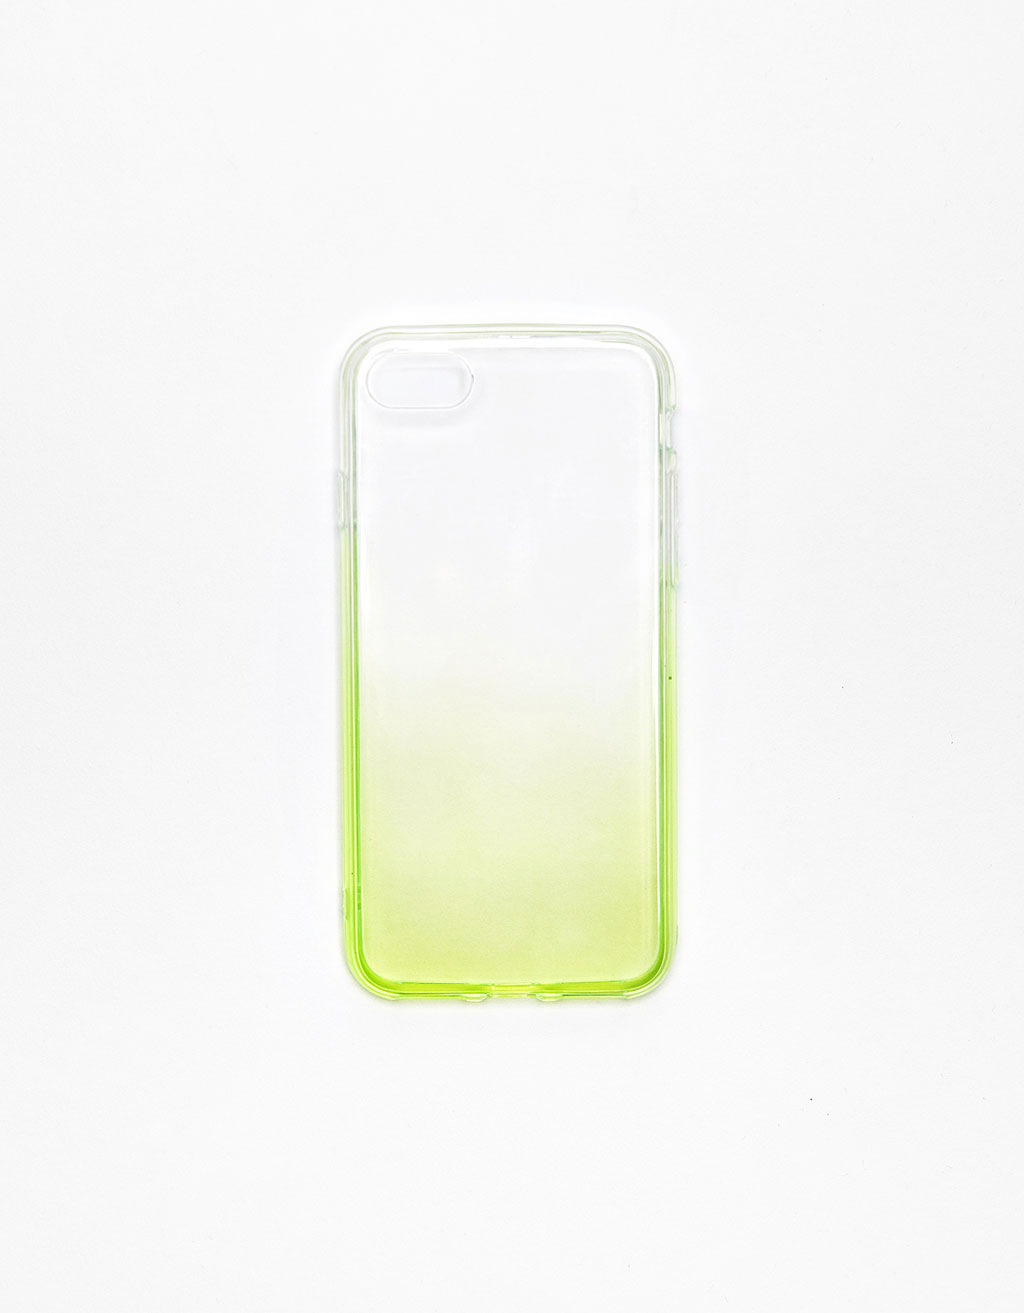 Transparent neon ombré iPhone 7 case